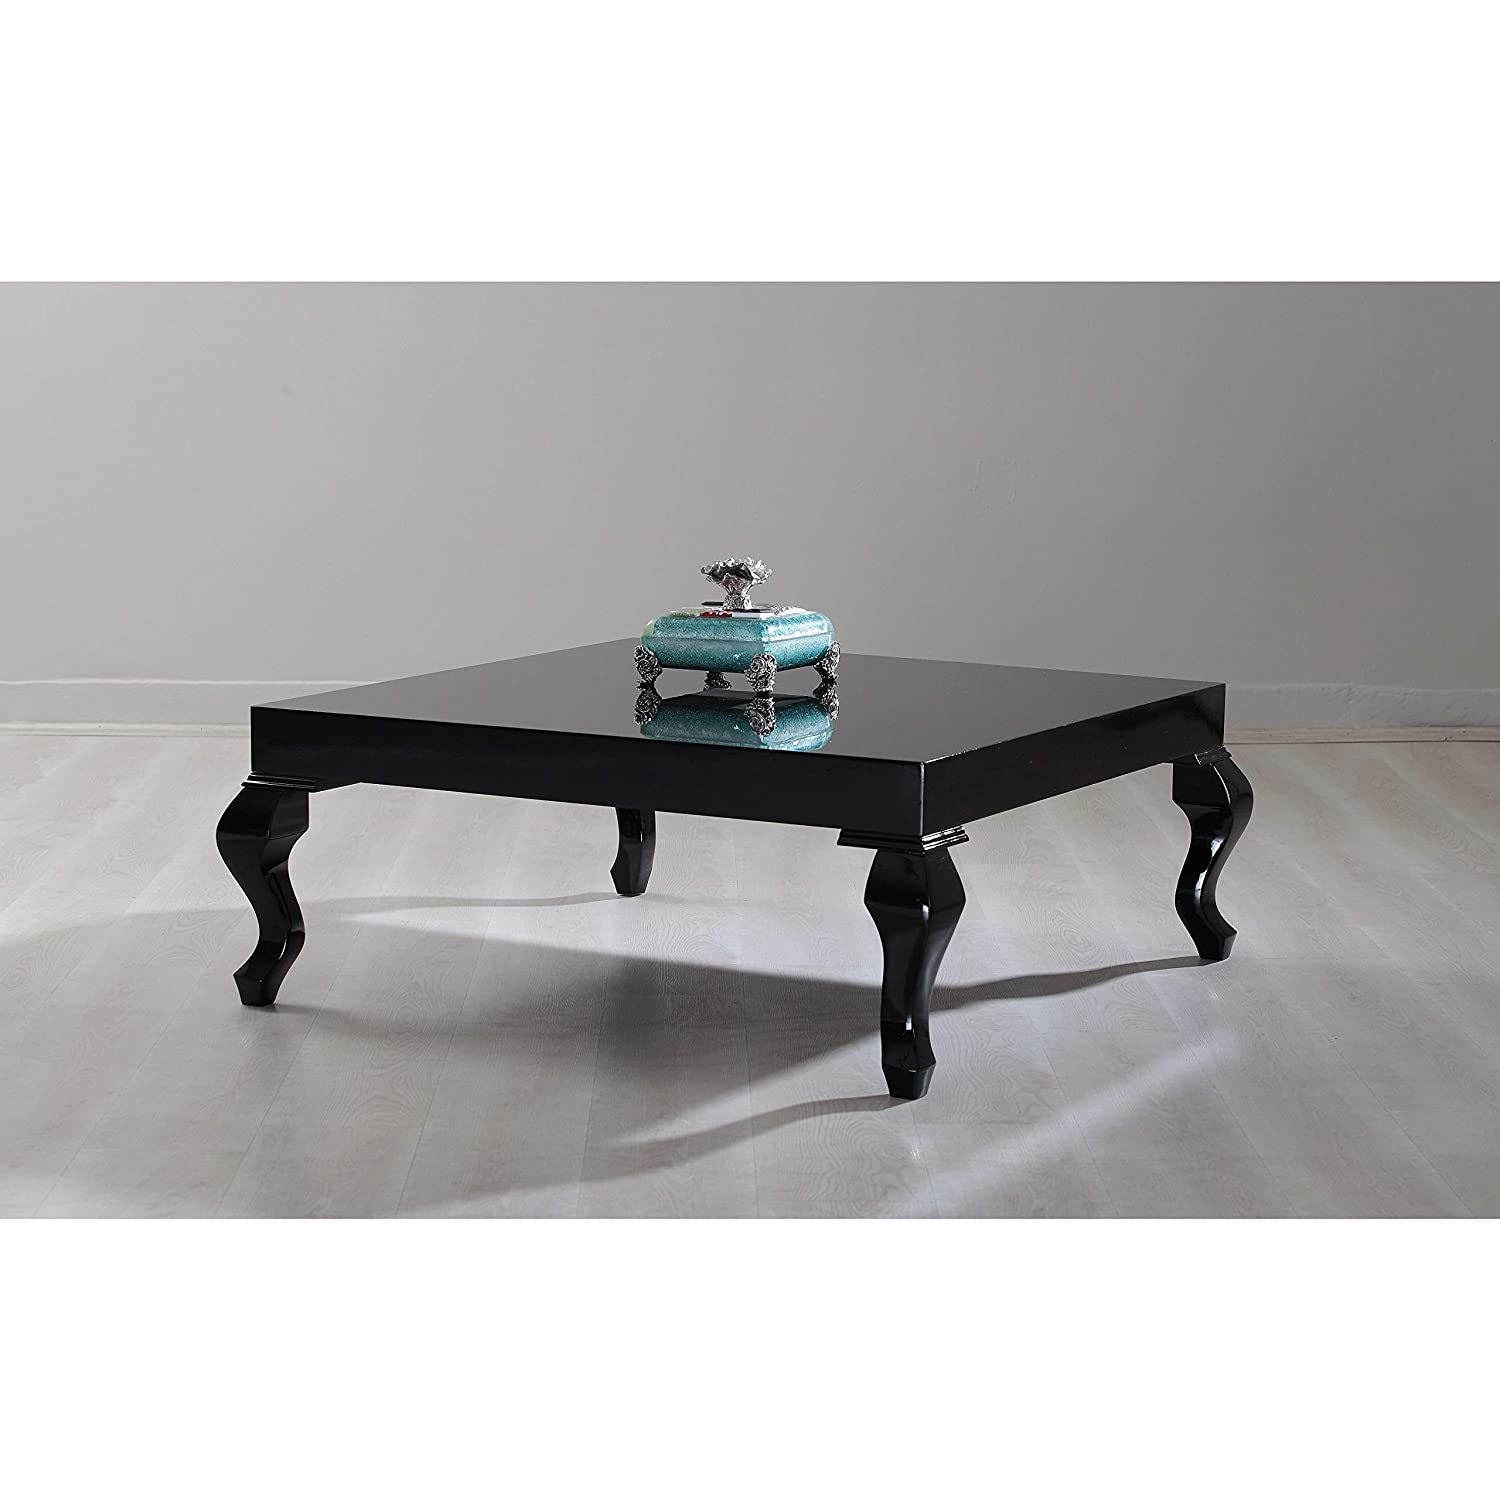 2019 year looks- Lacquer Black coffee table pictures